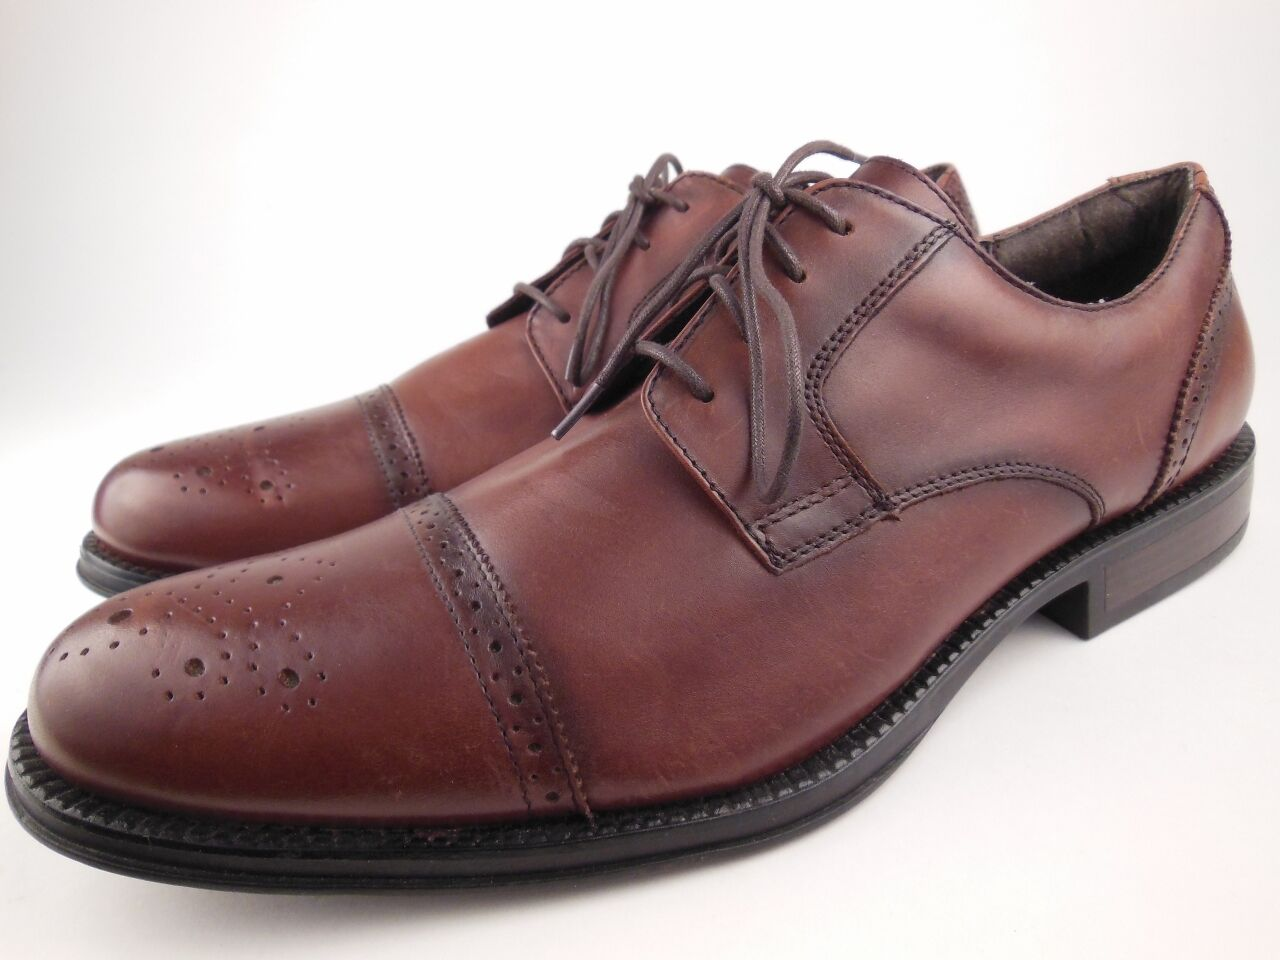 CHAPS Hayward Brown Leather Oxfords Dress shoes Men's Size 13 M